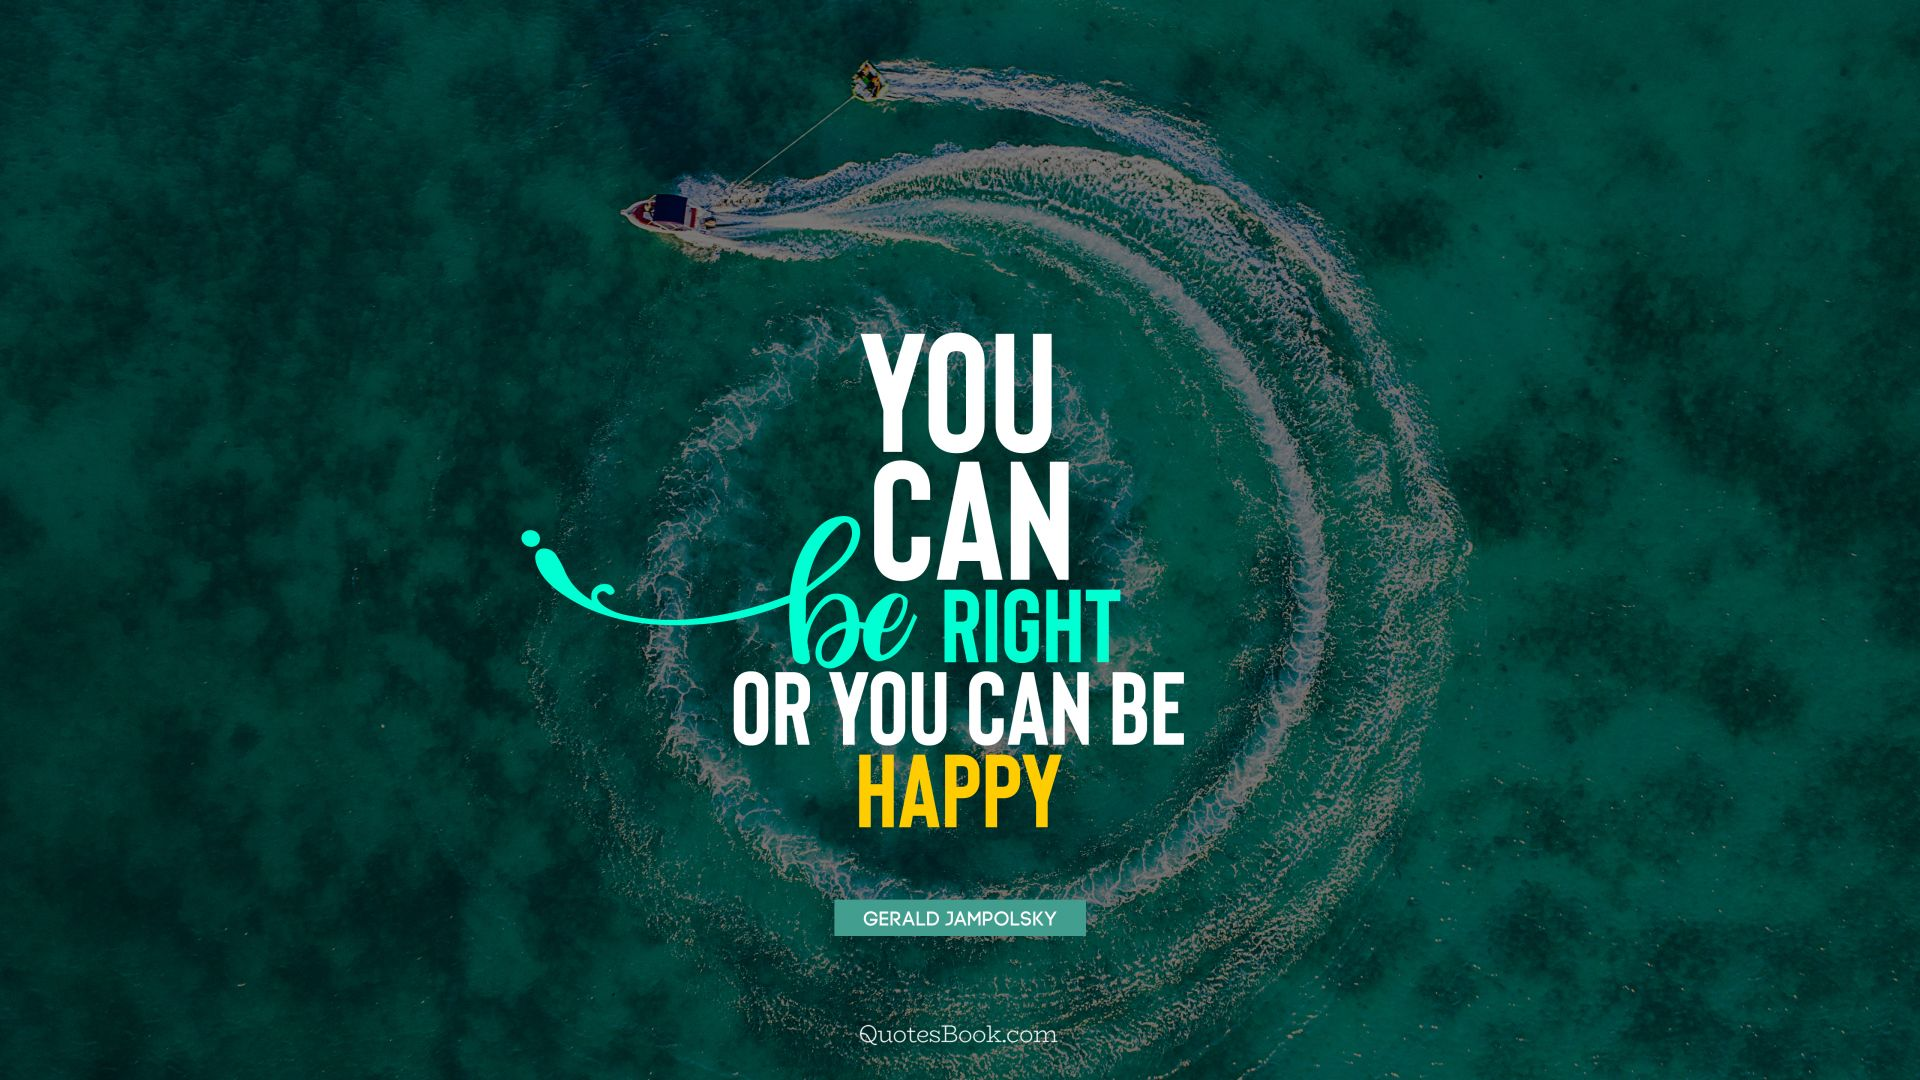 You can be right or you can be happy. - Quote by Gerald Jampolsky